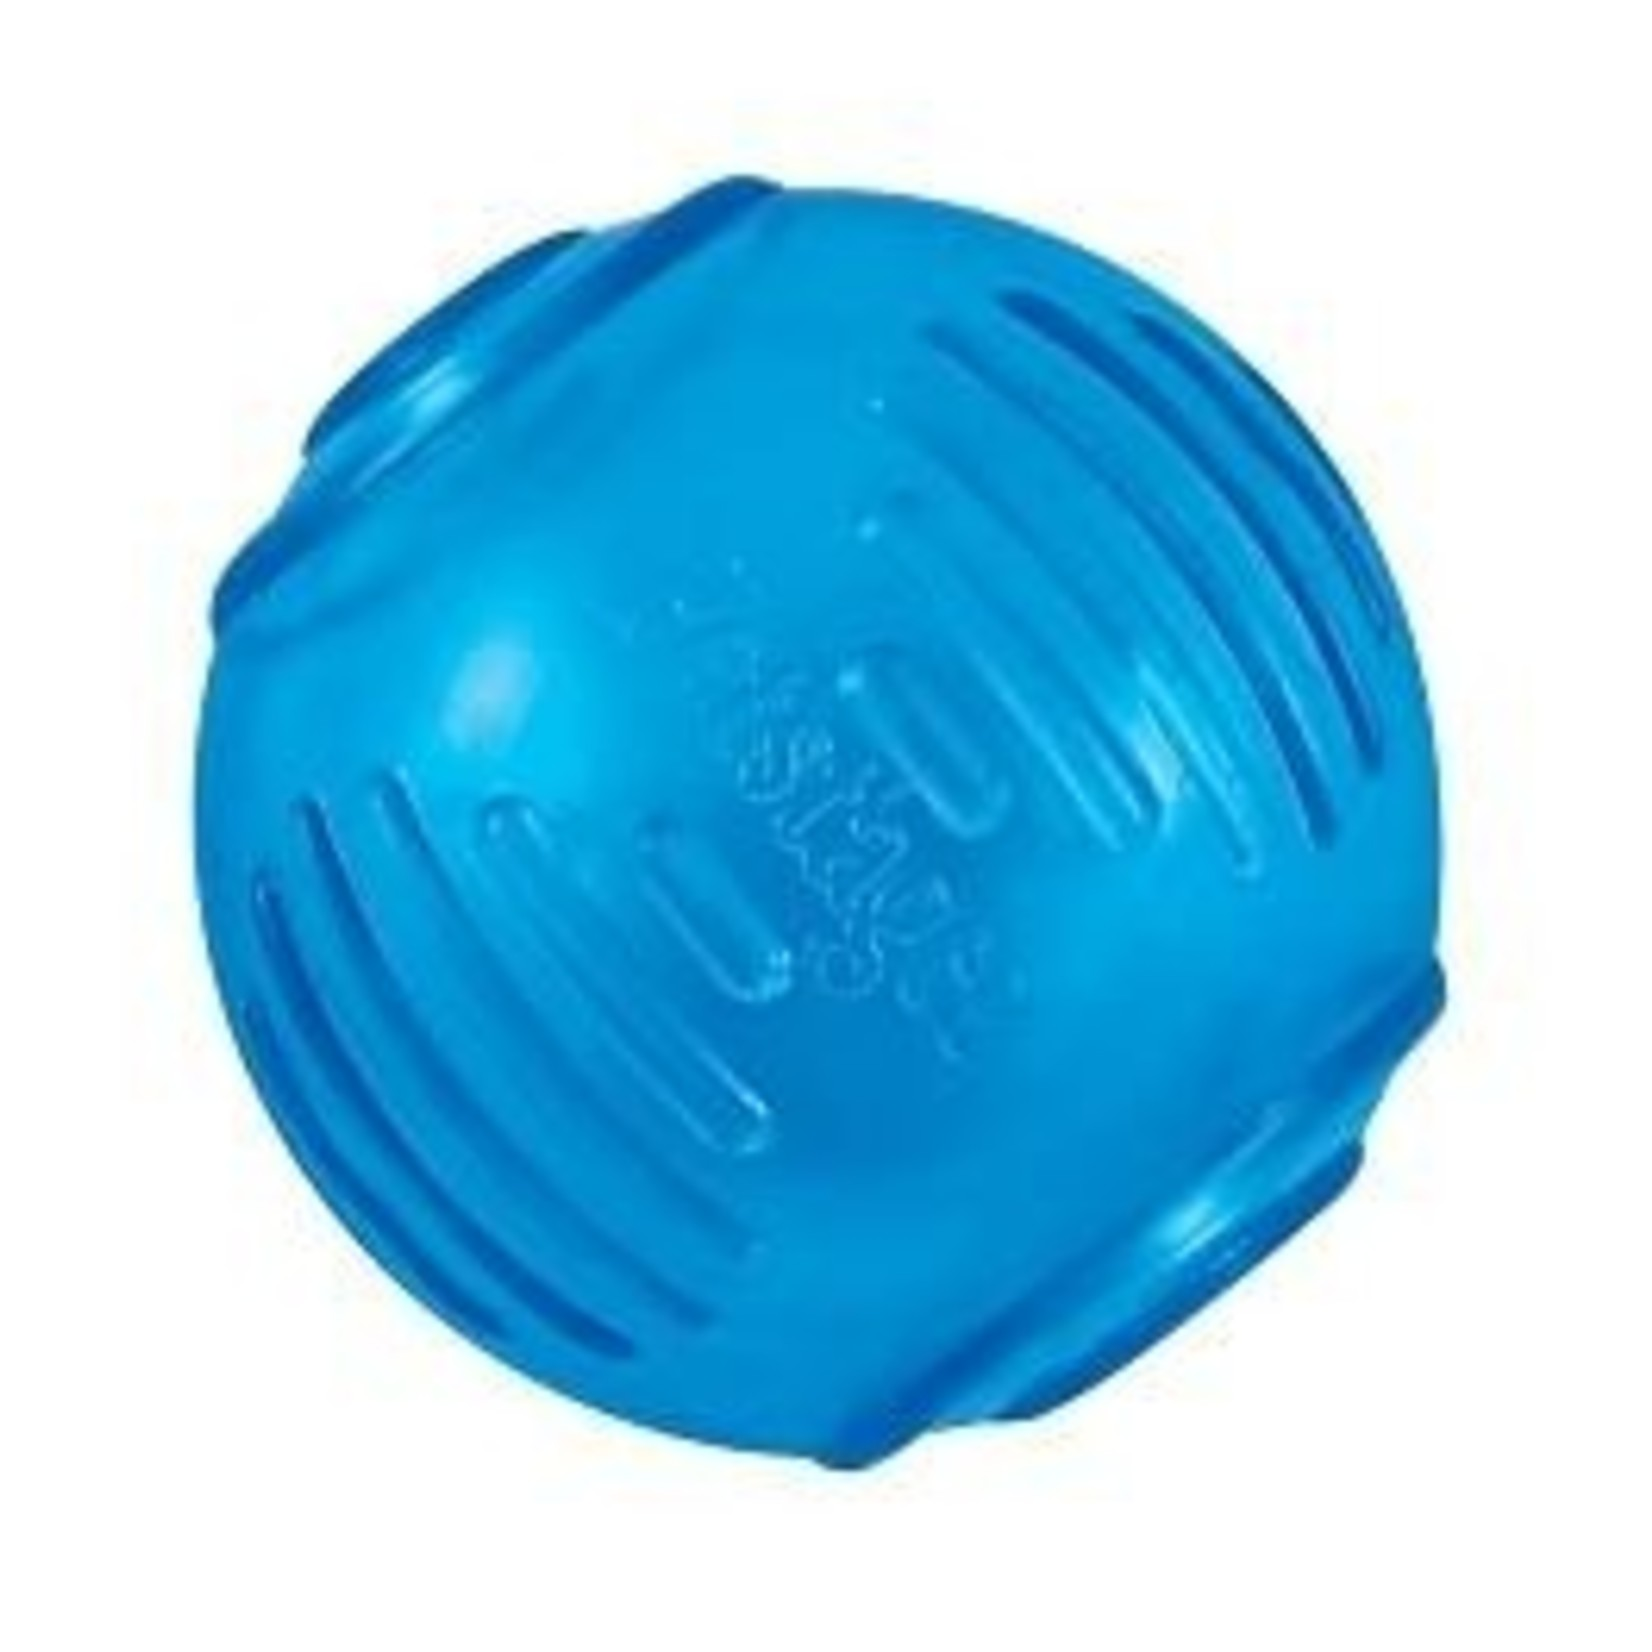 Petstages Petstages Orka Tennis Ball